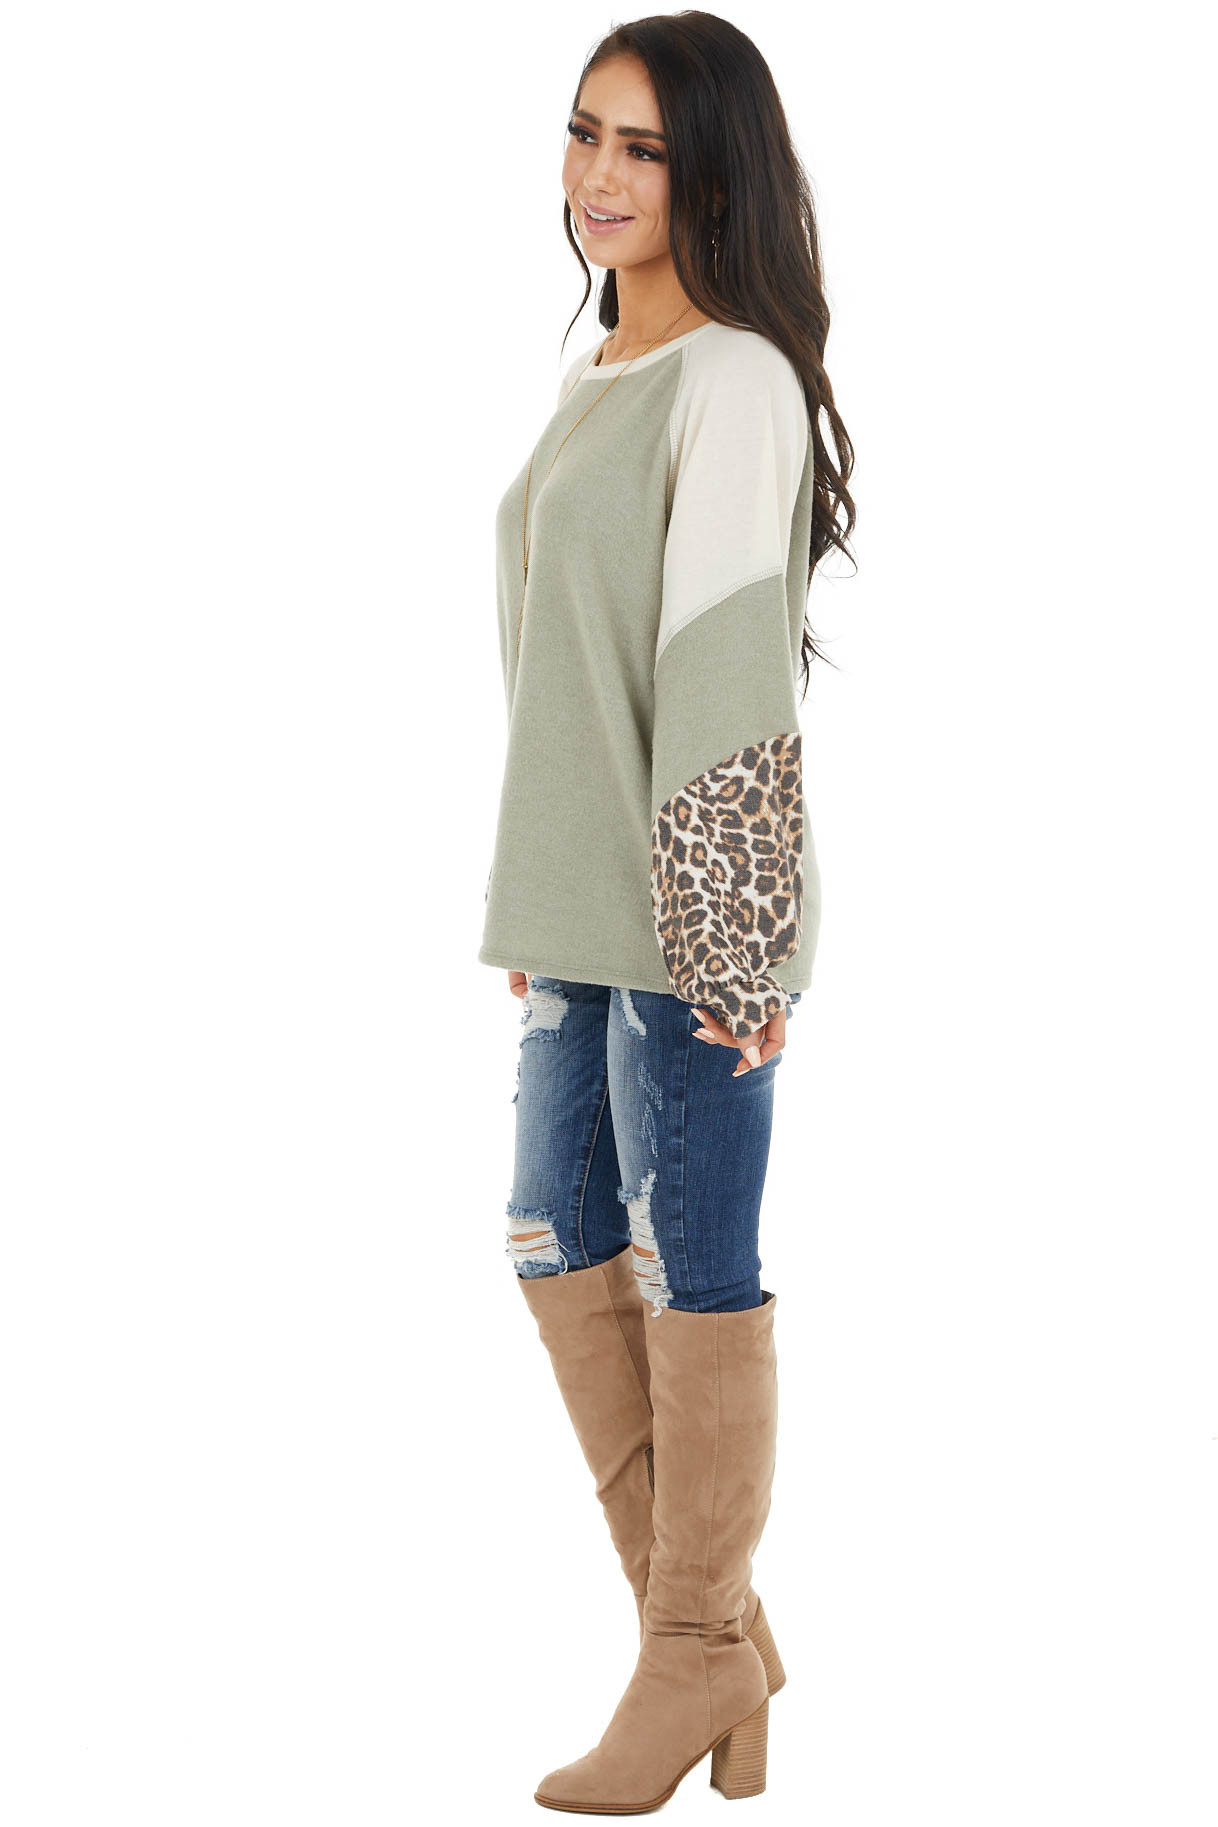 Sage and Cream Colorblock Top with Leopard Print Details